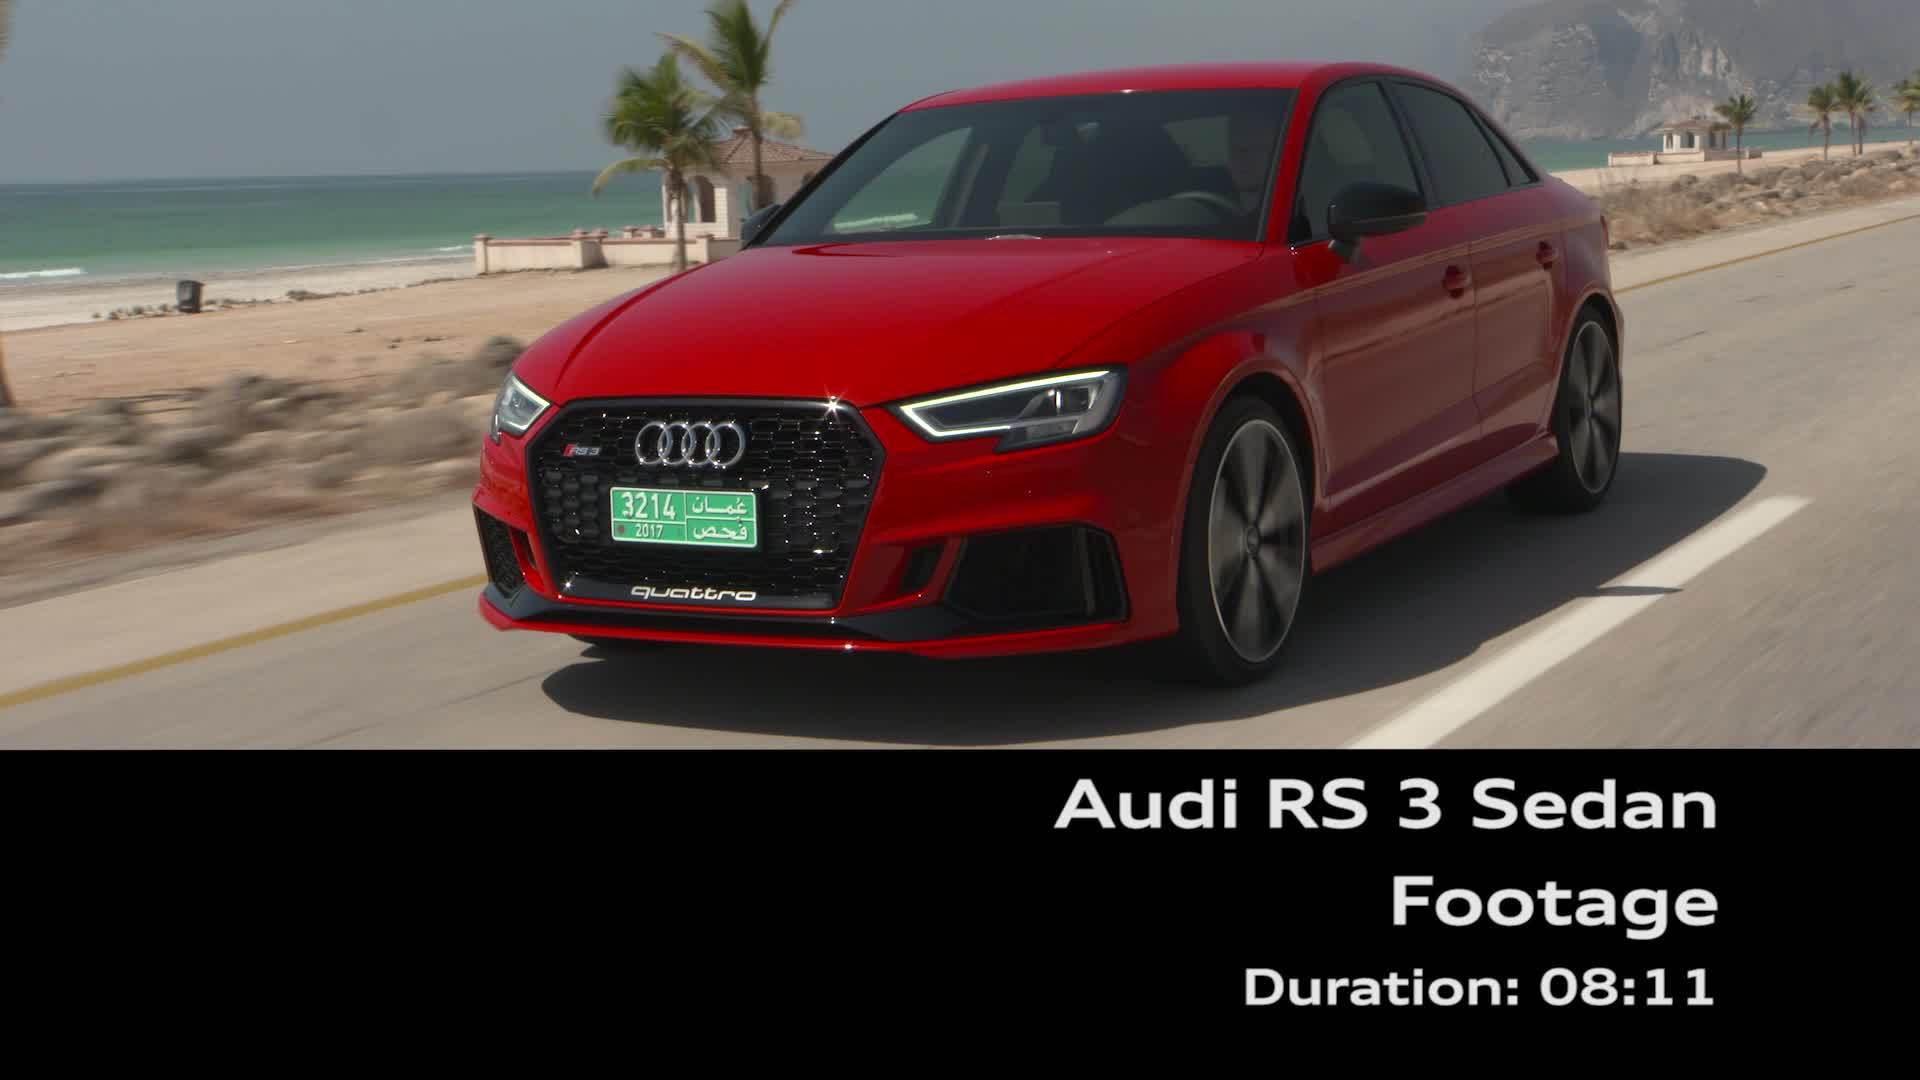 Audi RS 3 Sedan Footage - On location Oman